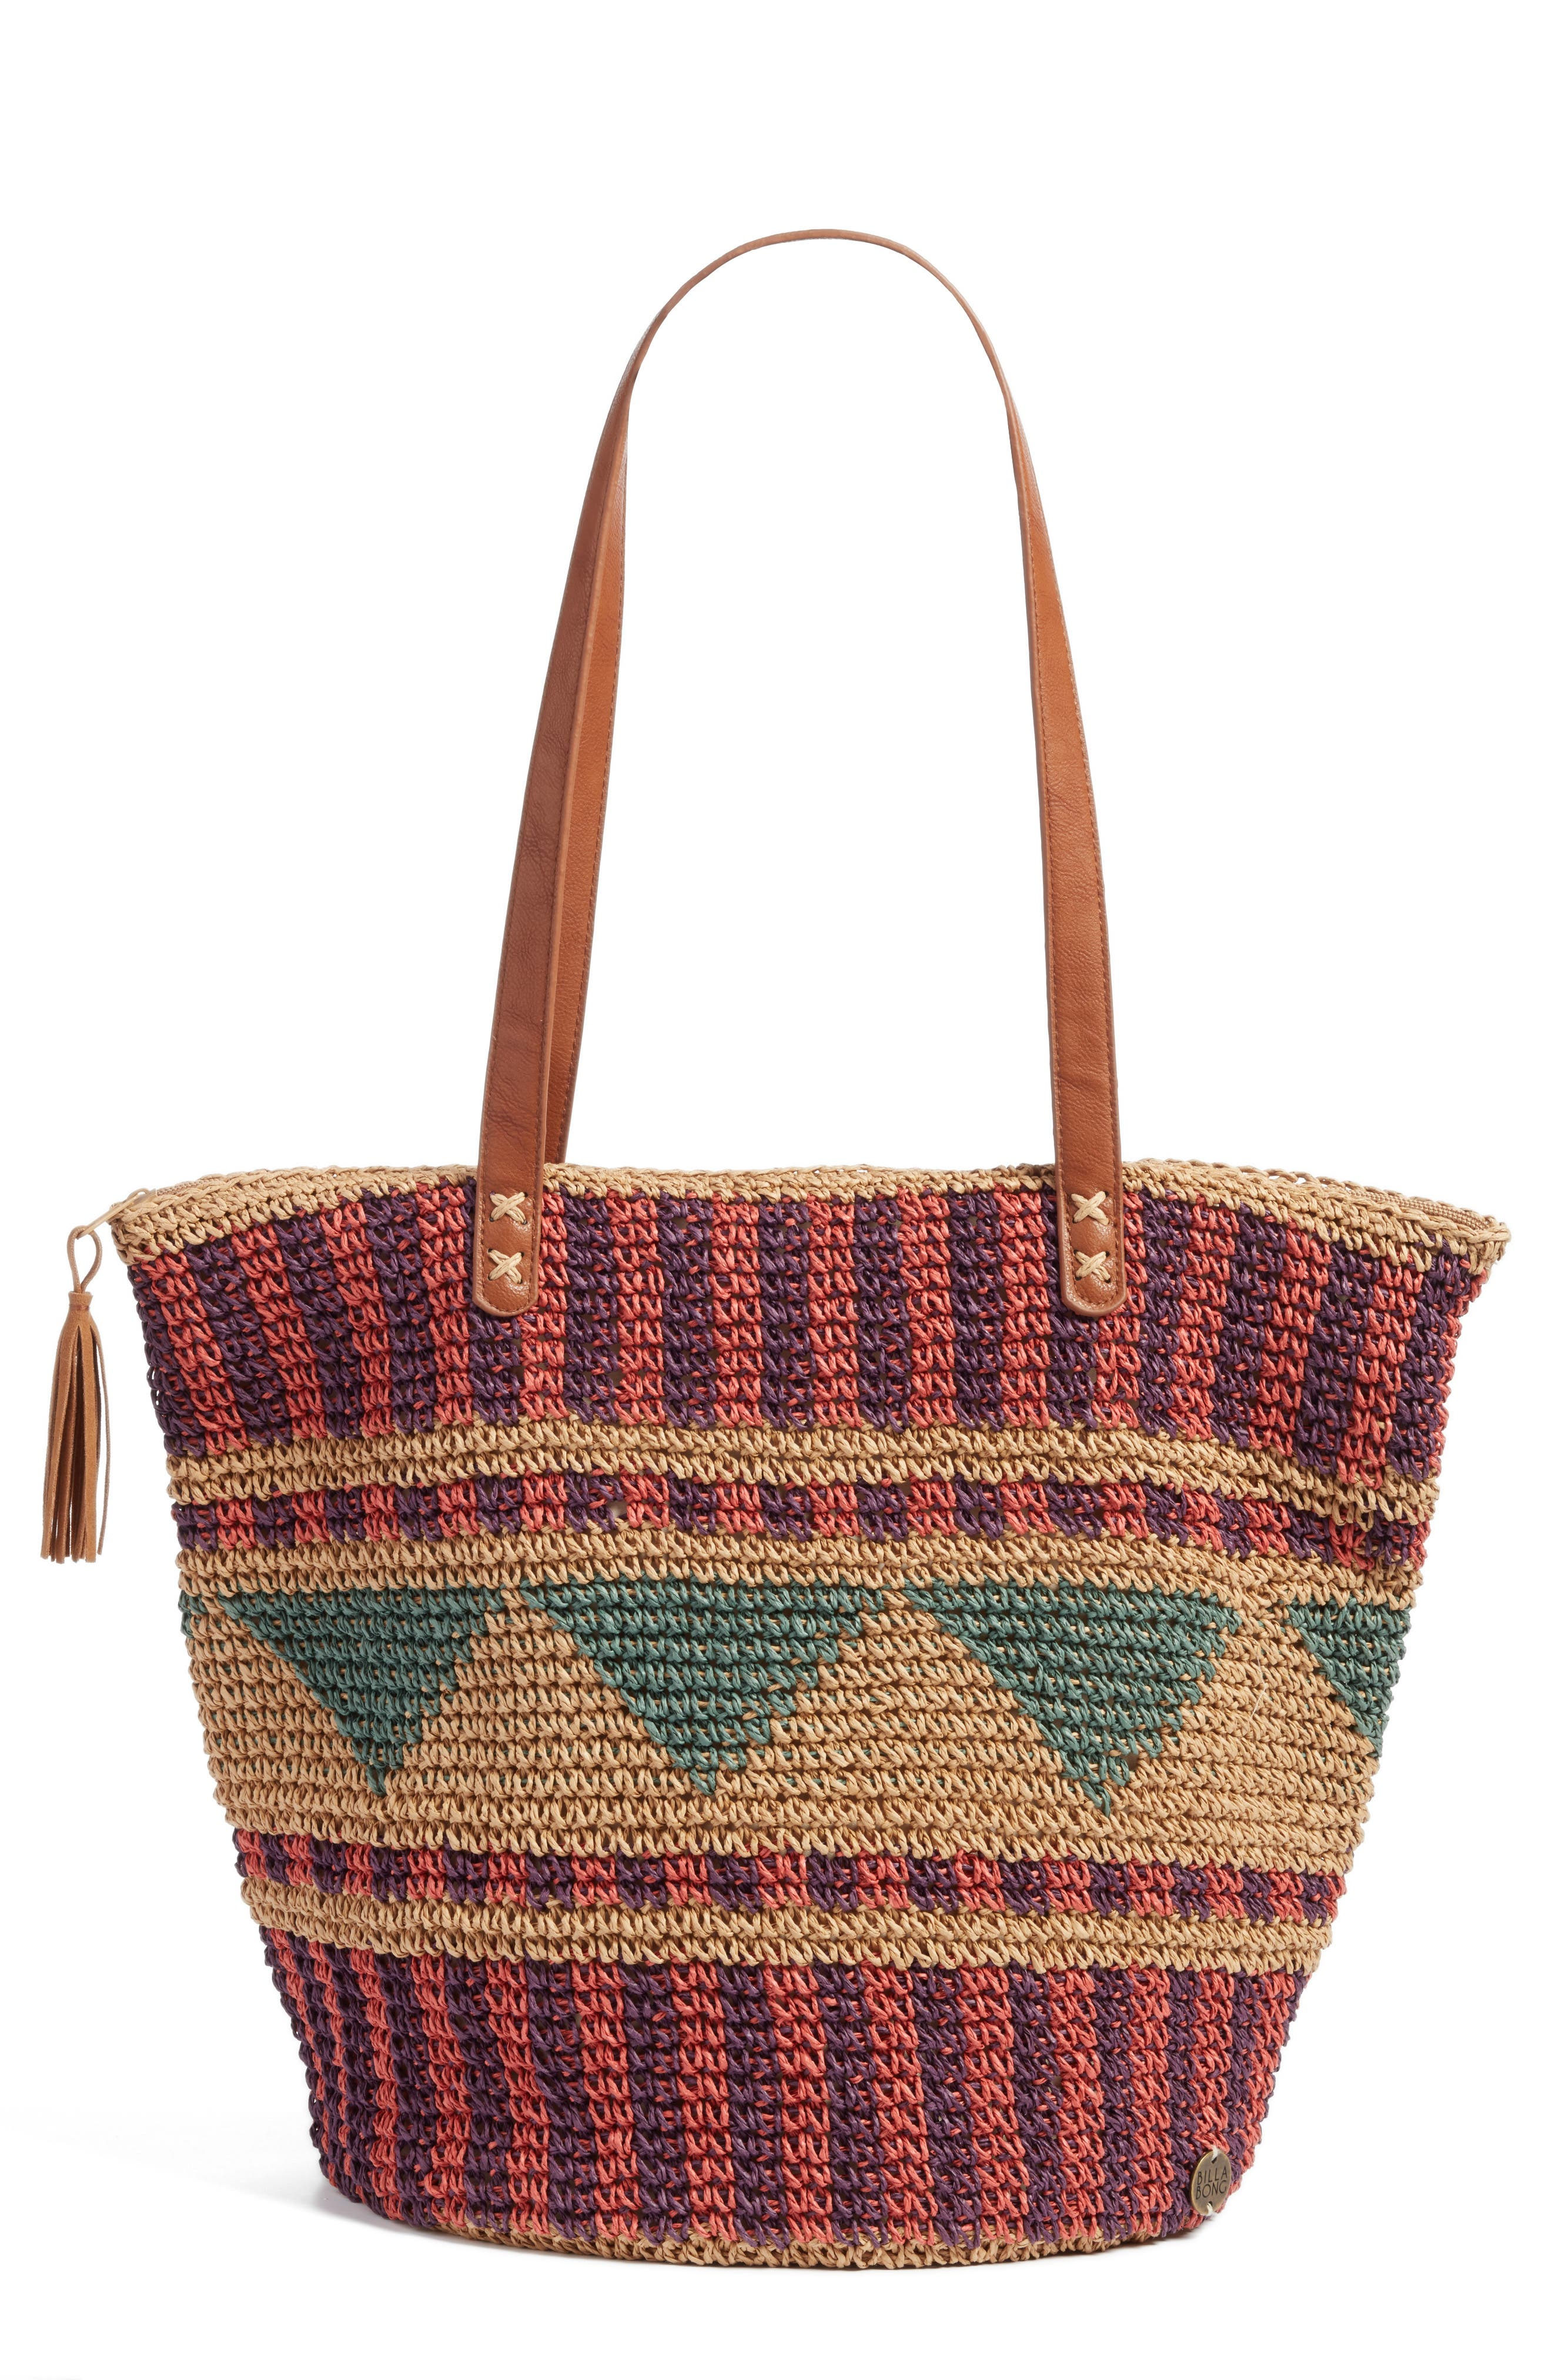 East of Dover Print Straw Tote,                         Main,                         color, 600